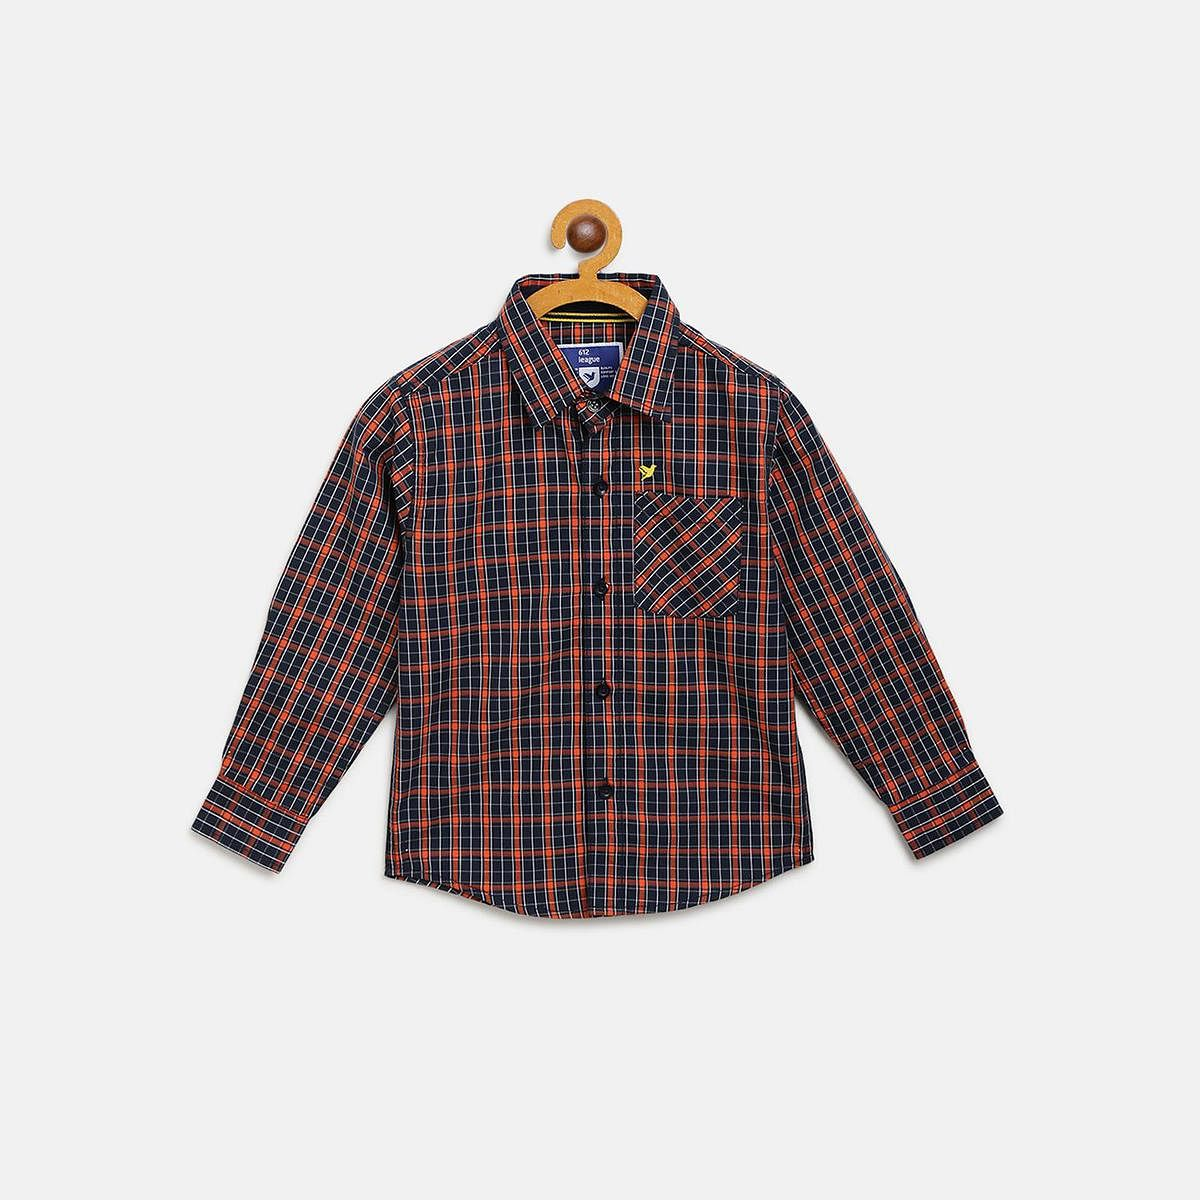 612 League - Blue Colored Checked F/S Shirts For Boys